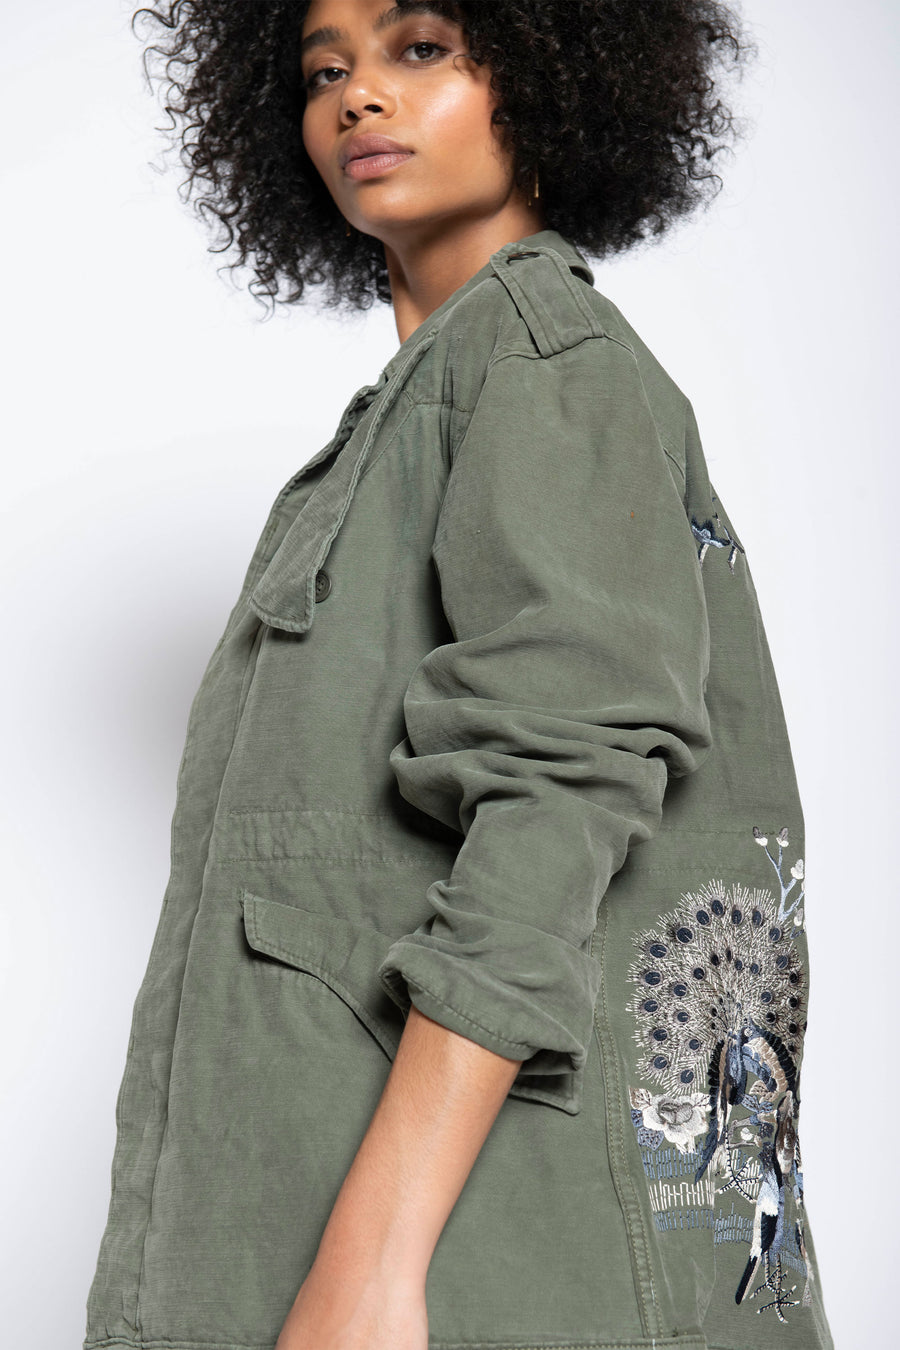 ADVENTURE UPCYCLED VINTAGE ARMY JACKET